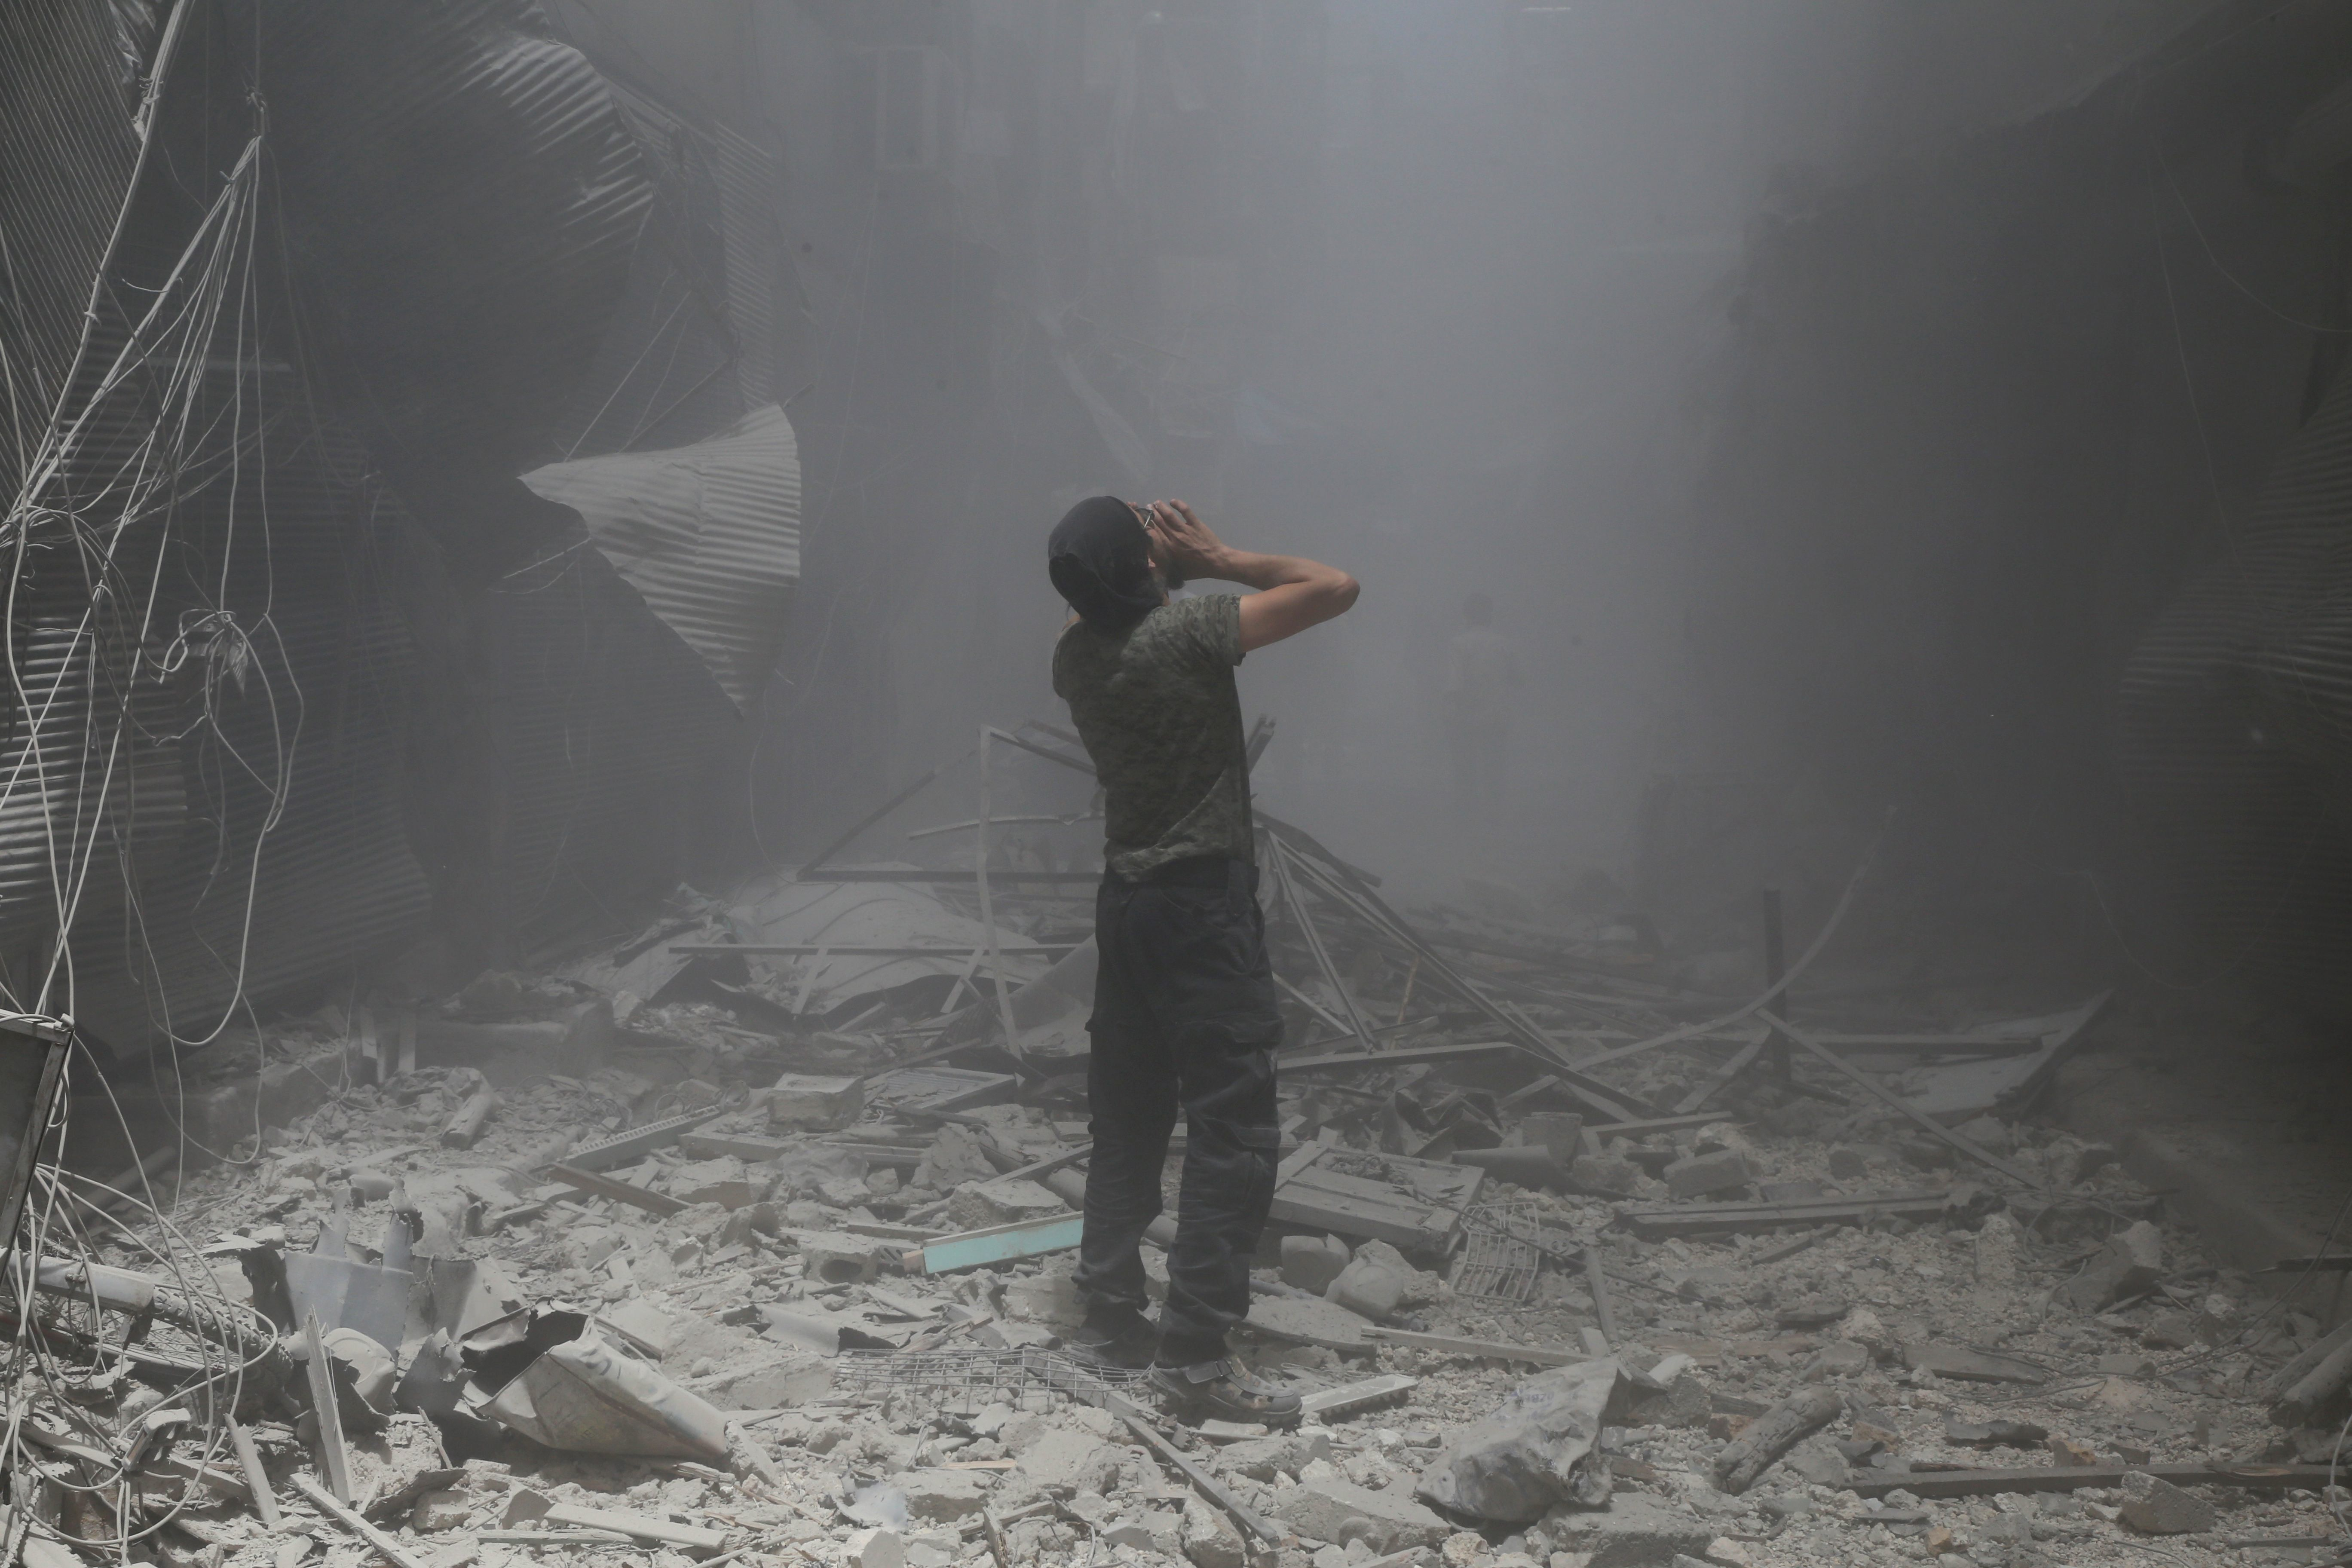 The conflict has killed nearly half a million Syrians in less than sevenyears.